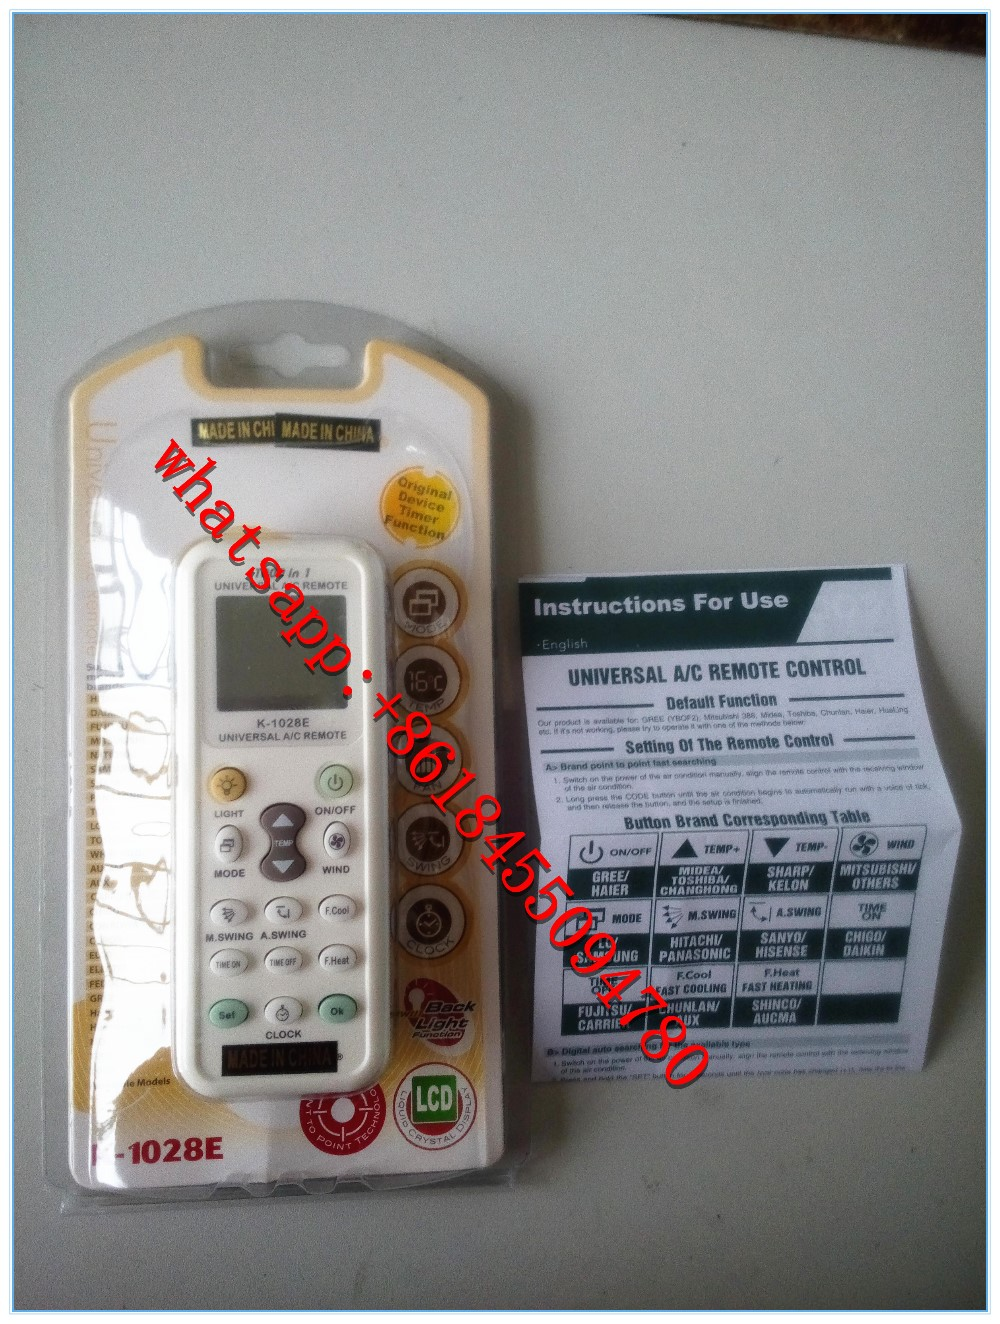 universal air condition remote control A/C remote k-1028 kt-1028e 1000 in 1